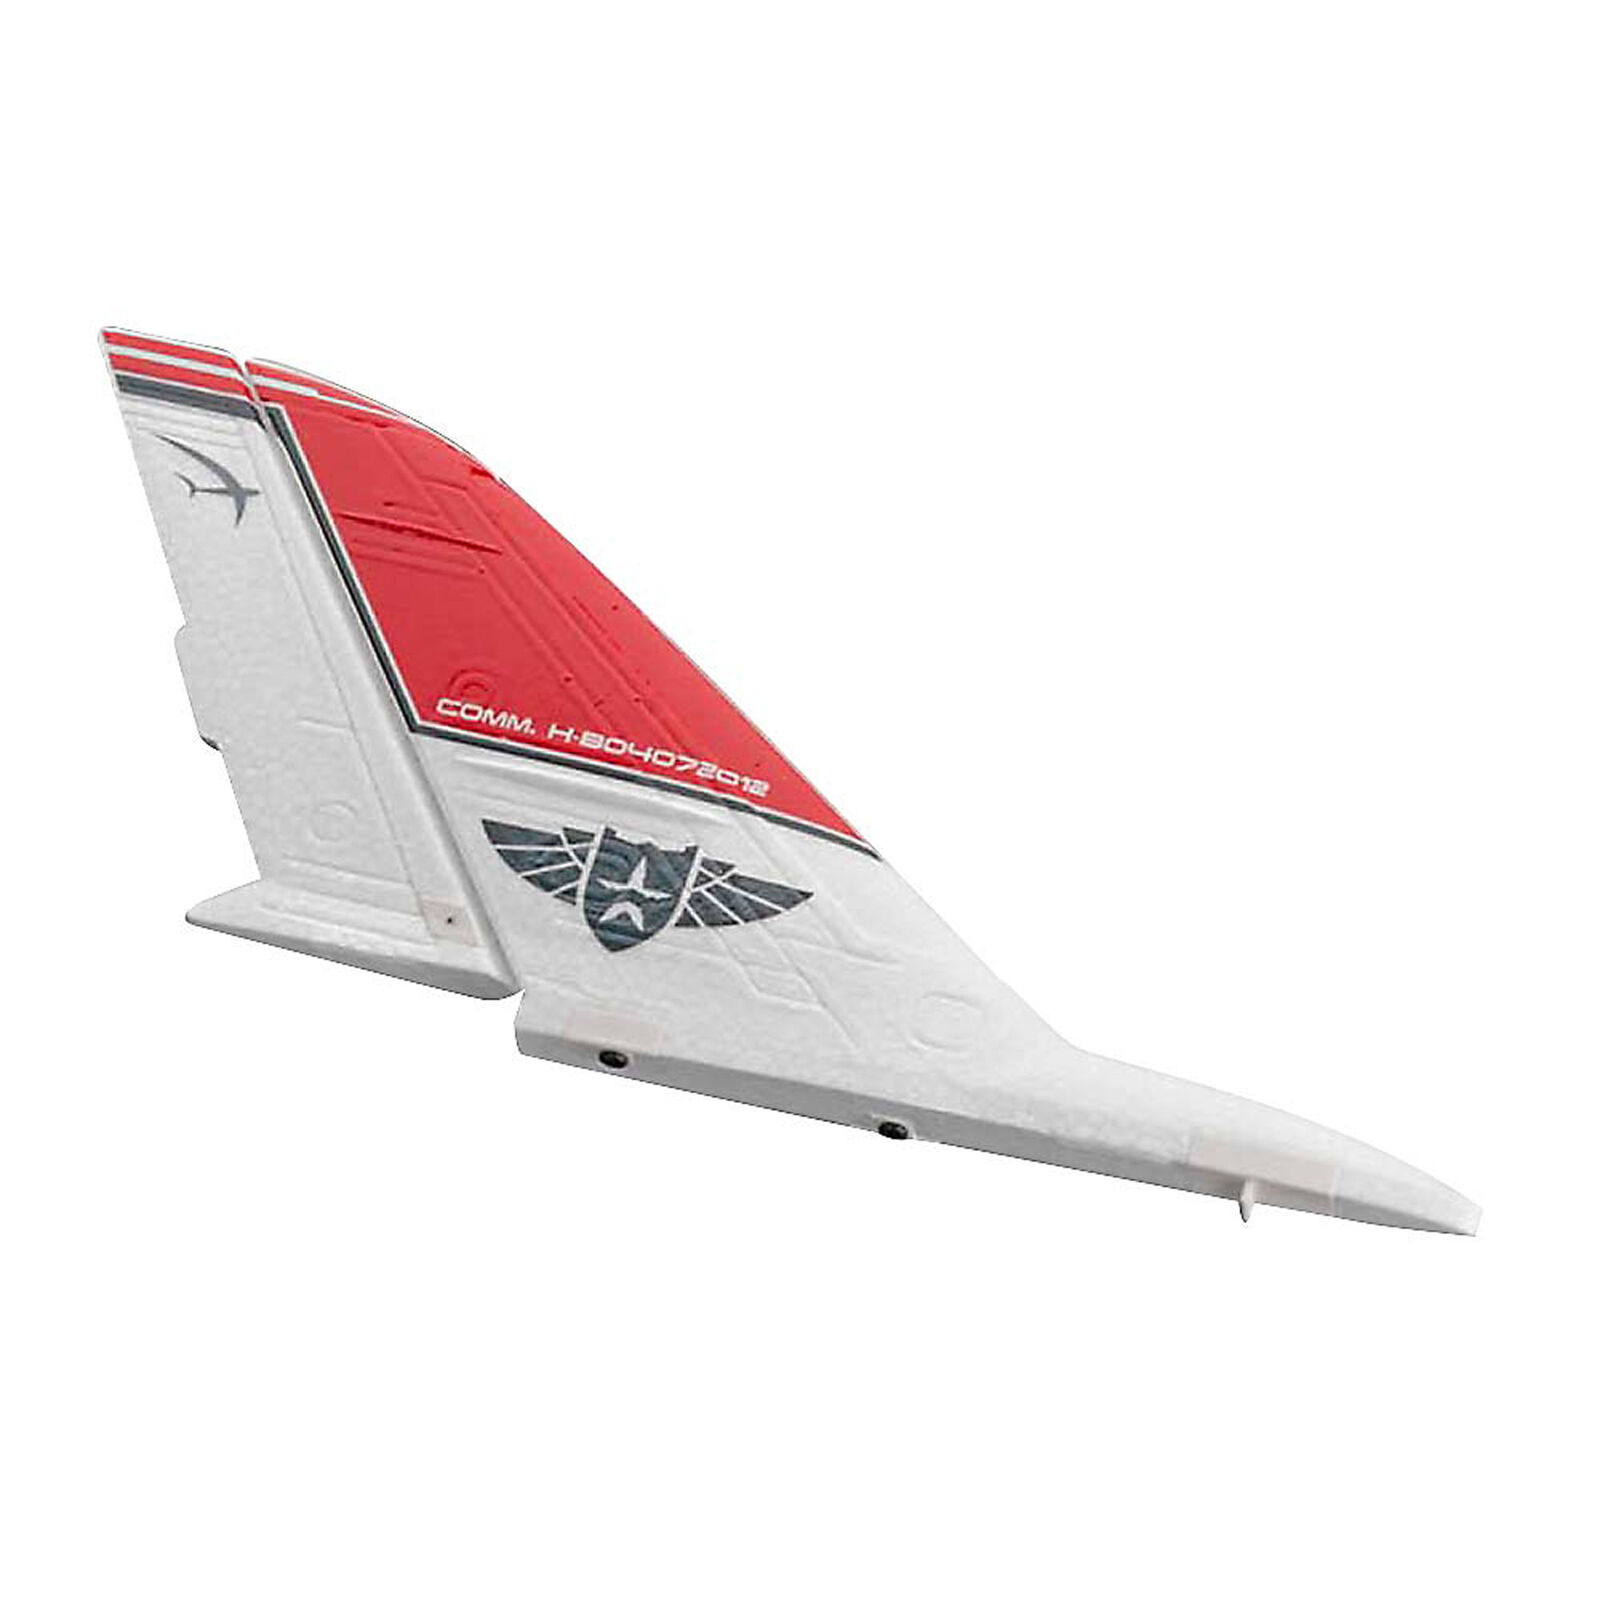 Vertical Stab with Rudder Control Horn: Hadron Flying Wing